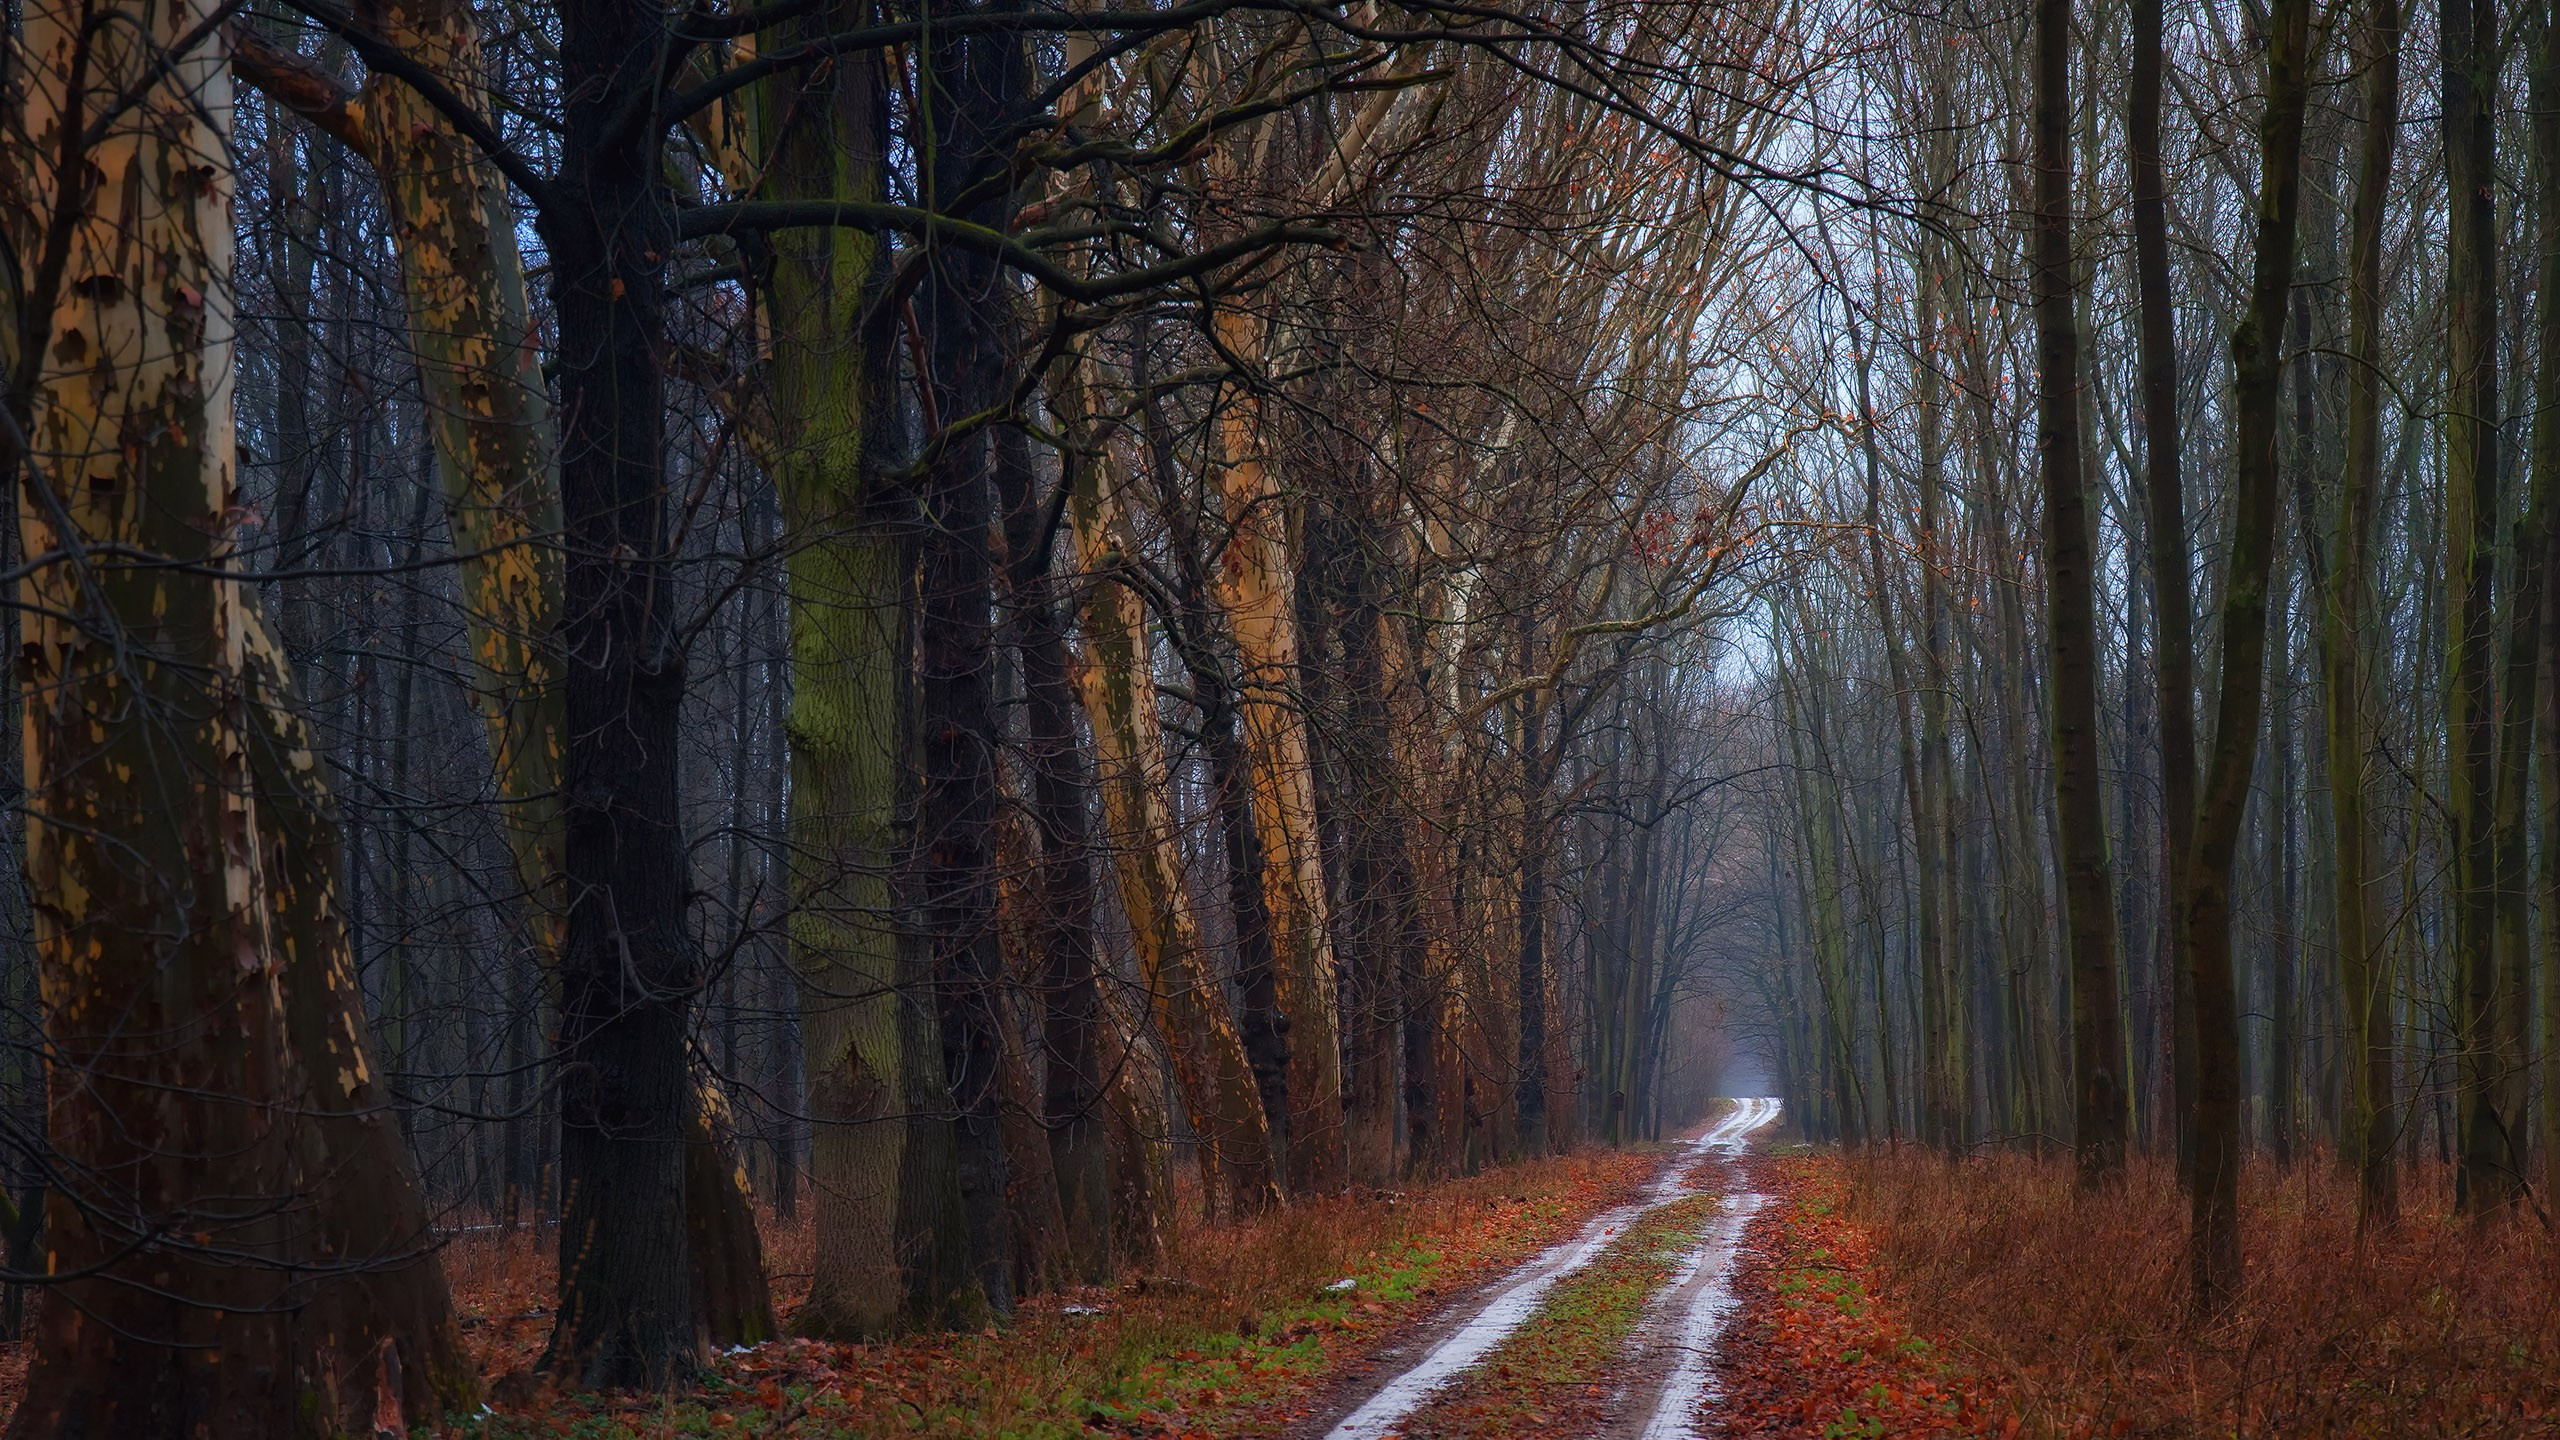 Cool Forest Road Wallpaper 36140 2560x1440 px ...